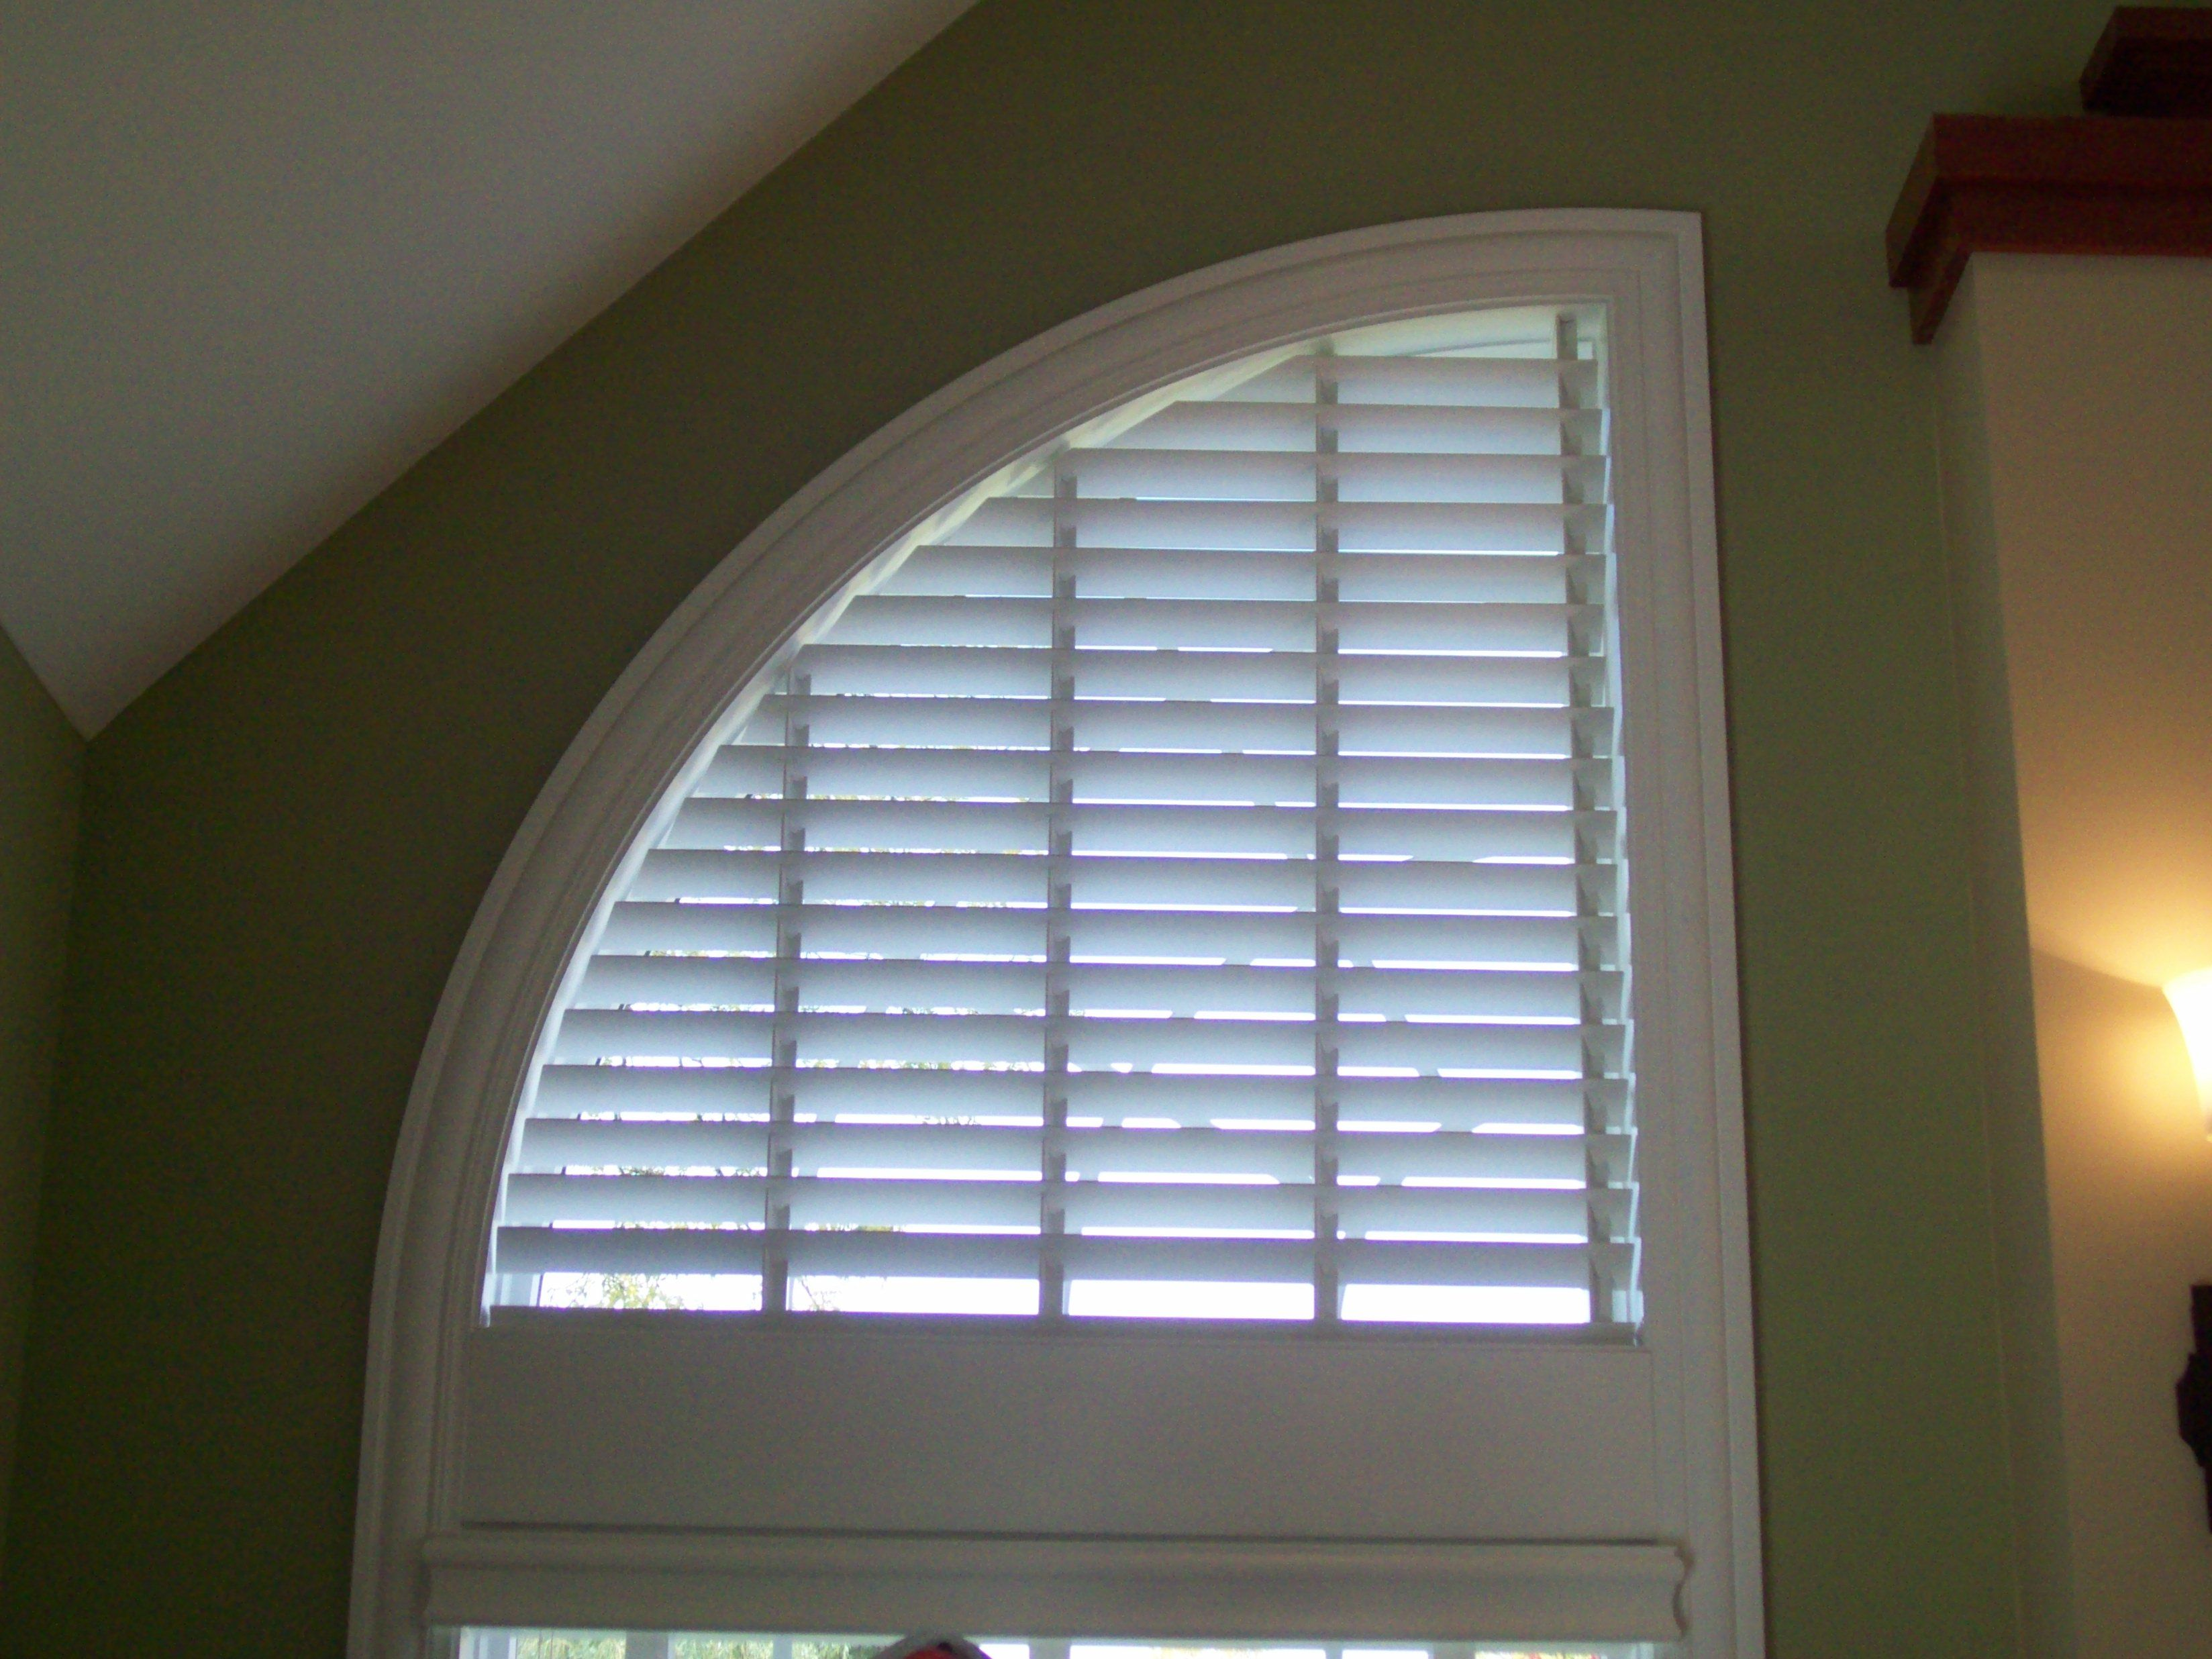 Wood Blind In Speciality Shade Quarter Round Window